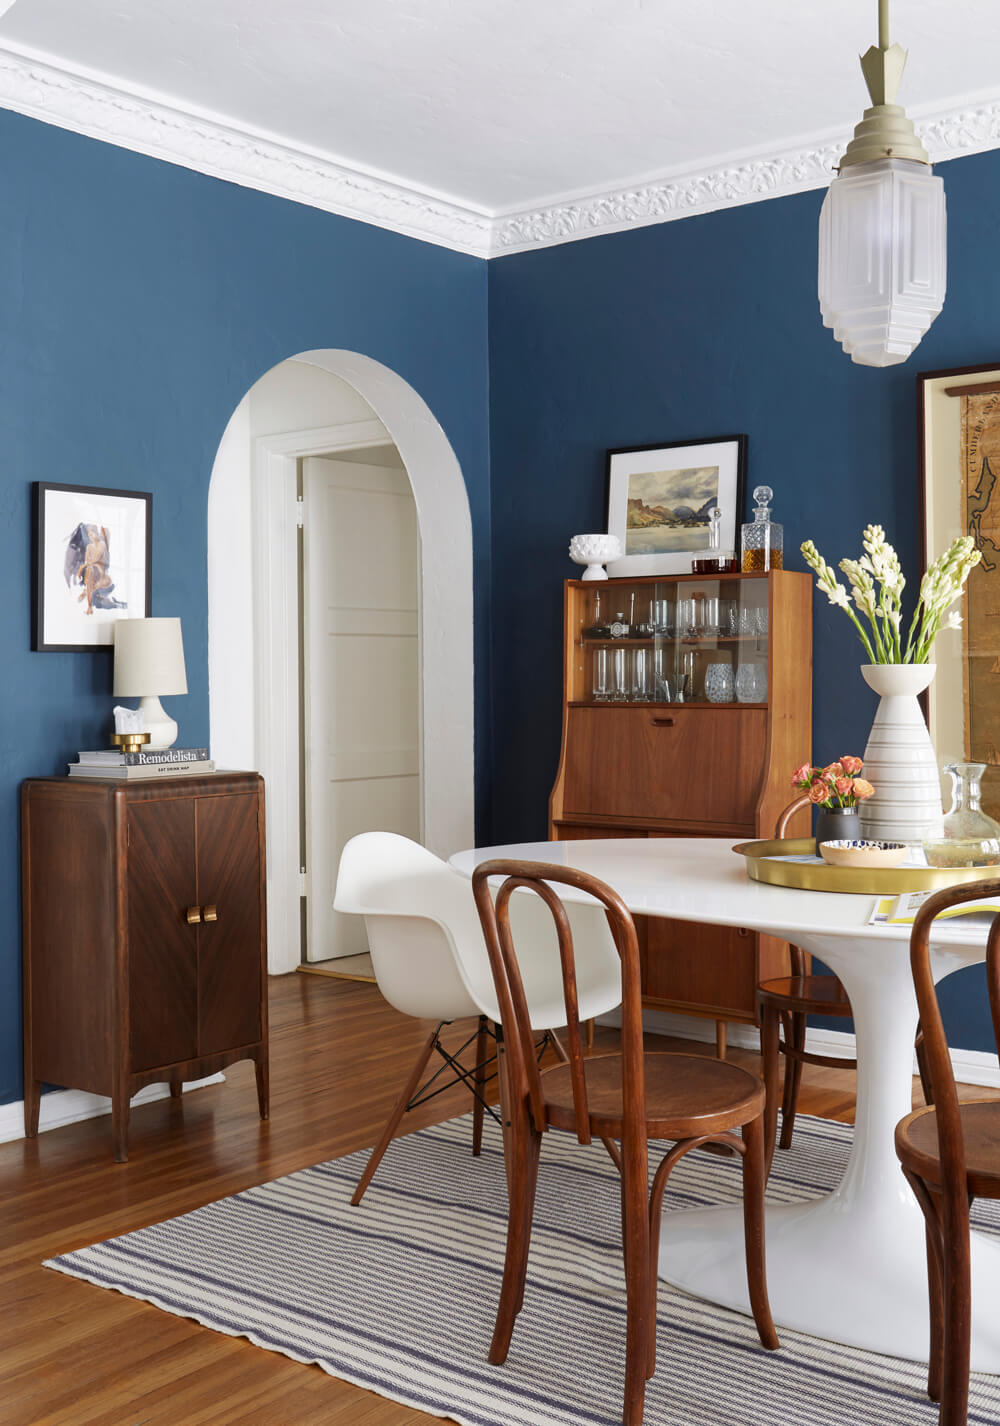 White And Blue Is A Match Made In Color Heaven You Can Tap Into This Clic Combination By Simply Using As An Accent Hue